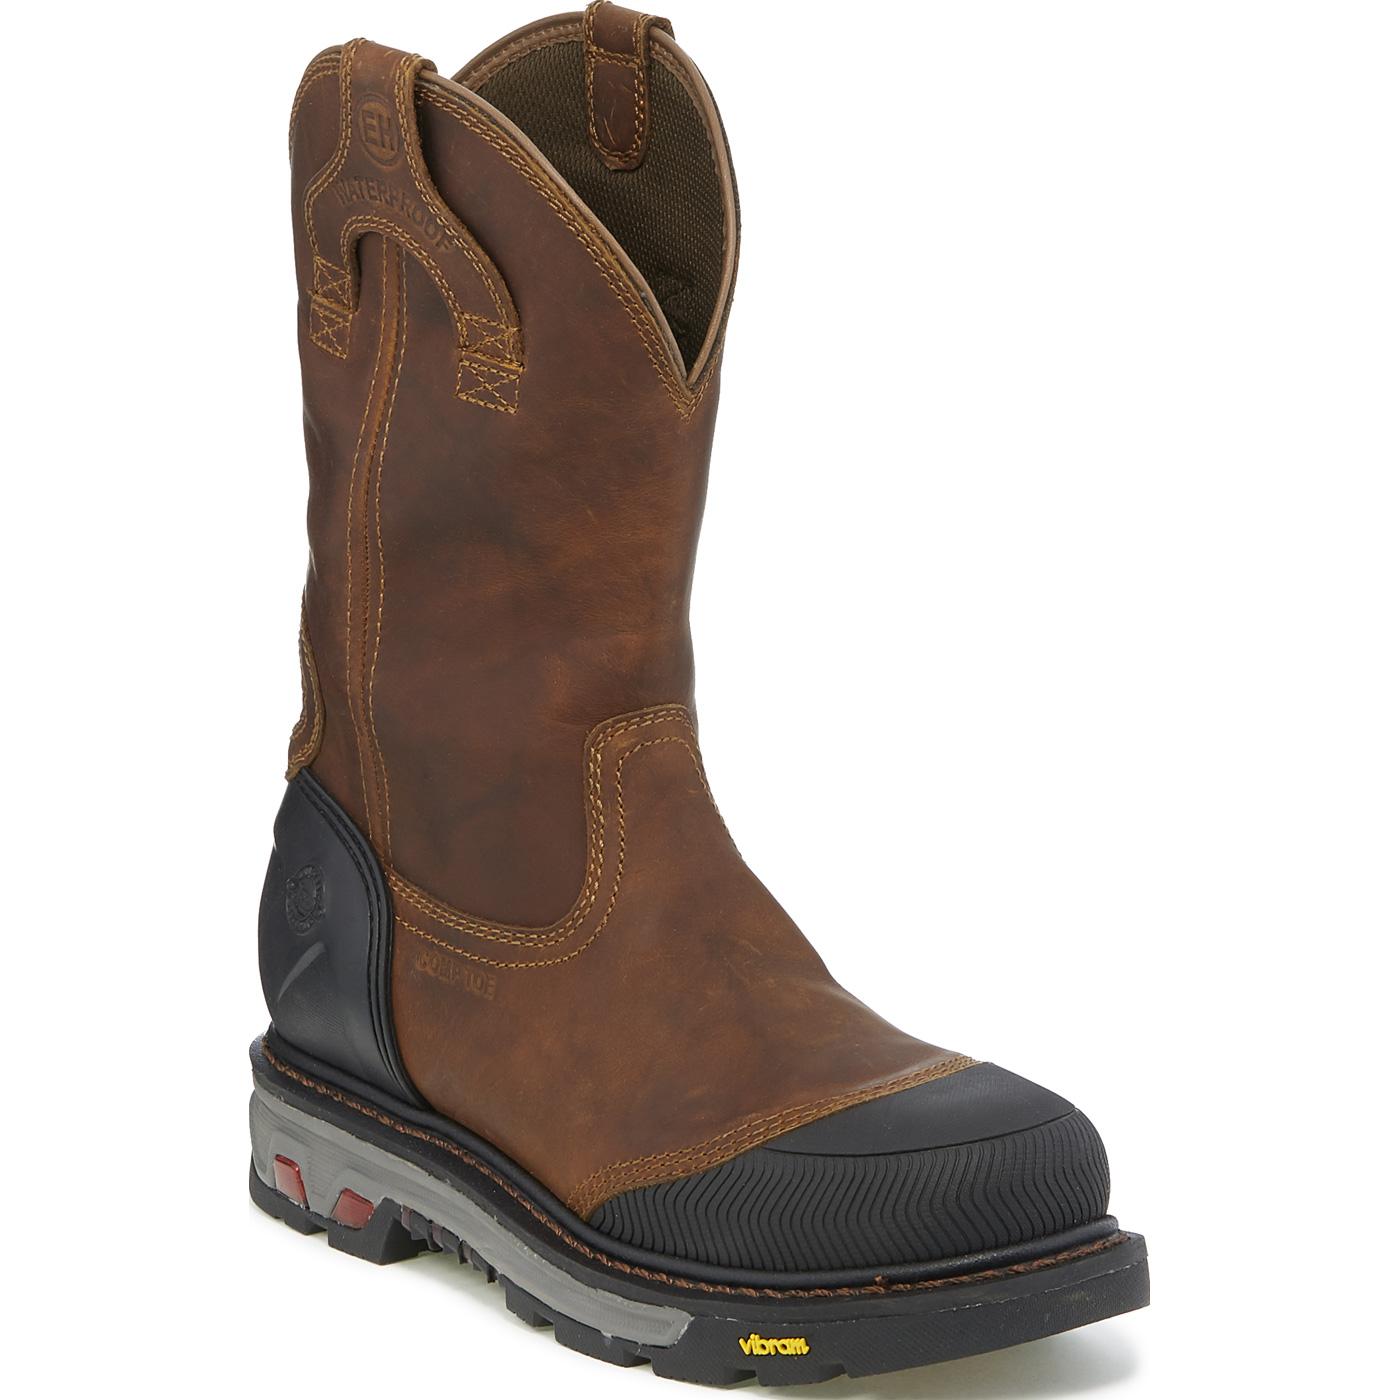 a8239bc9f12 Justin Original Workboots Warhawk Men's 11 inch Composite Toe Electrical  Hazard Waterproof Pull-on Work Boot